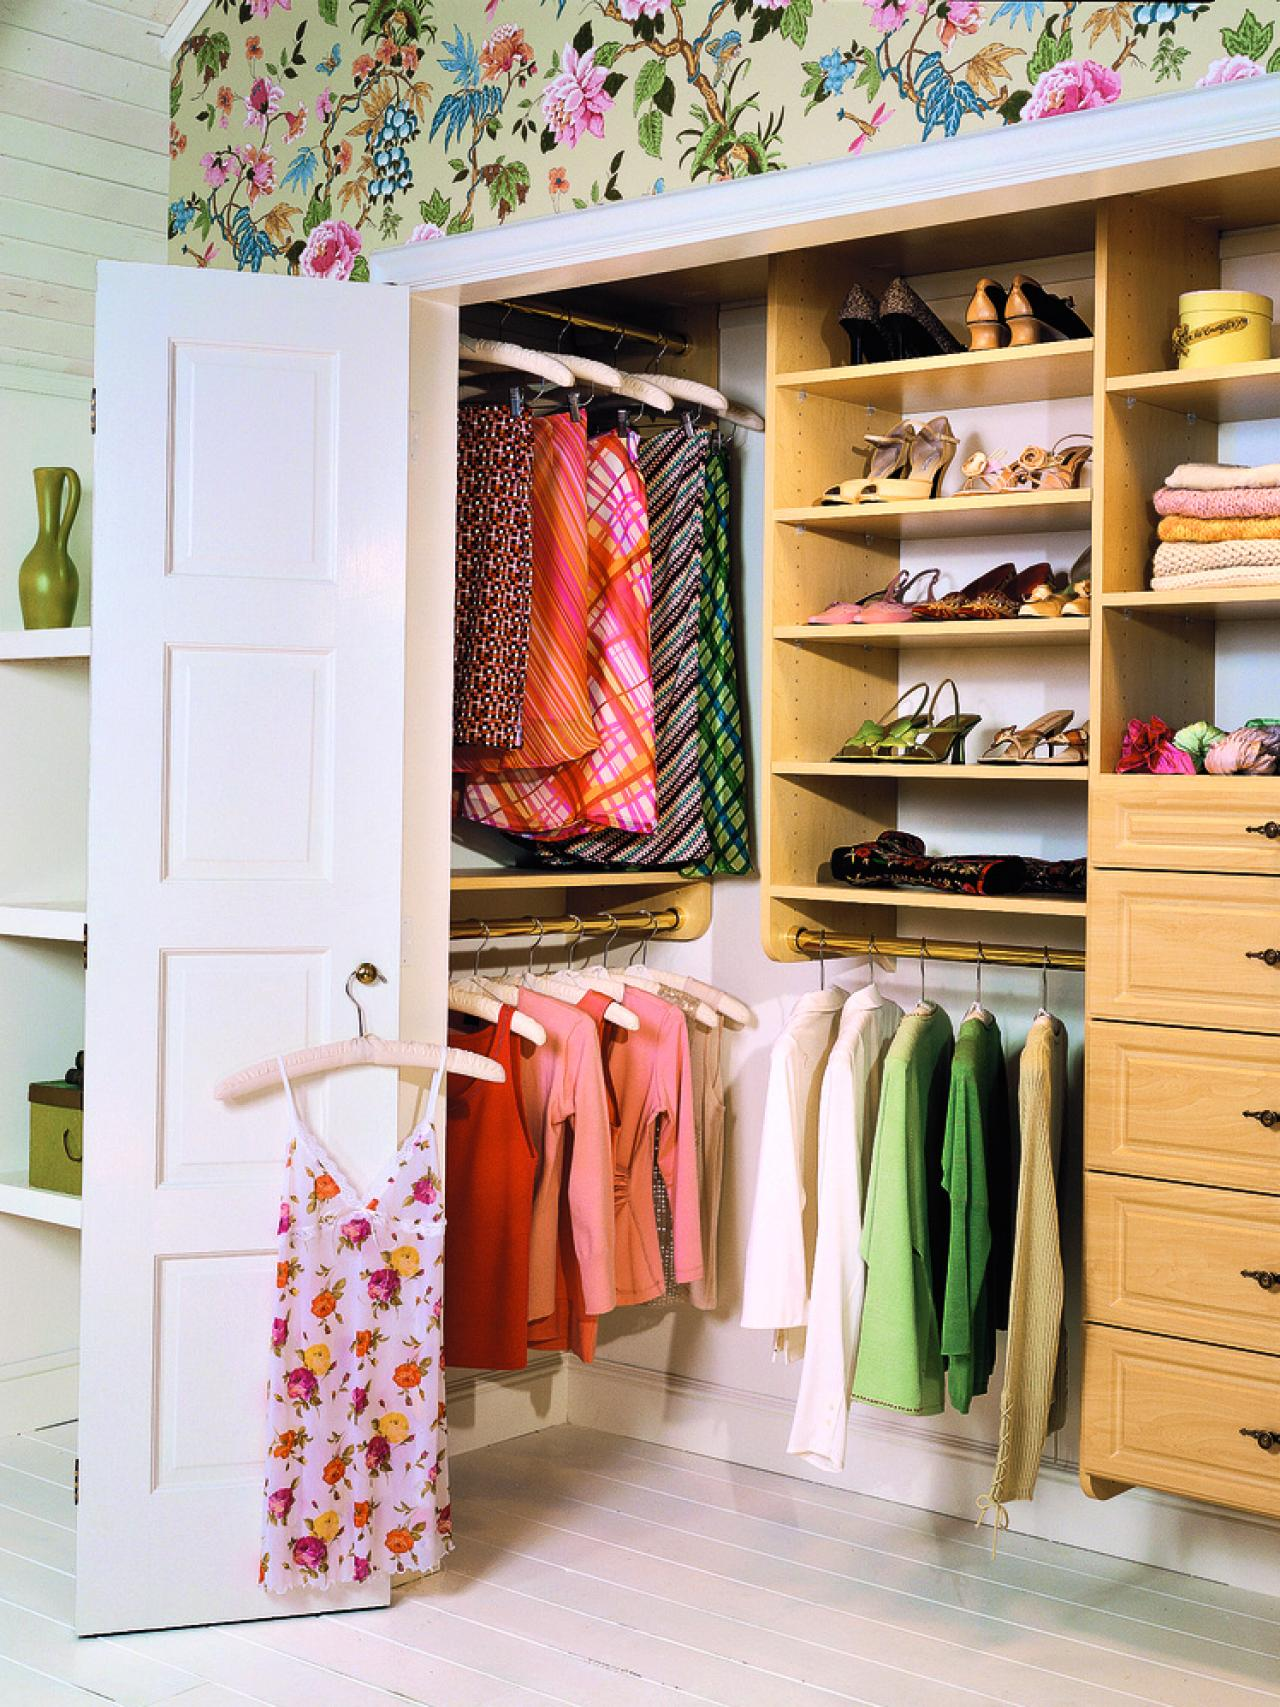 Amazing Design Of The Small Closet Design With Brown Wooden Shelves Added  With White Wall And Pictures Gallery